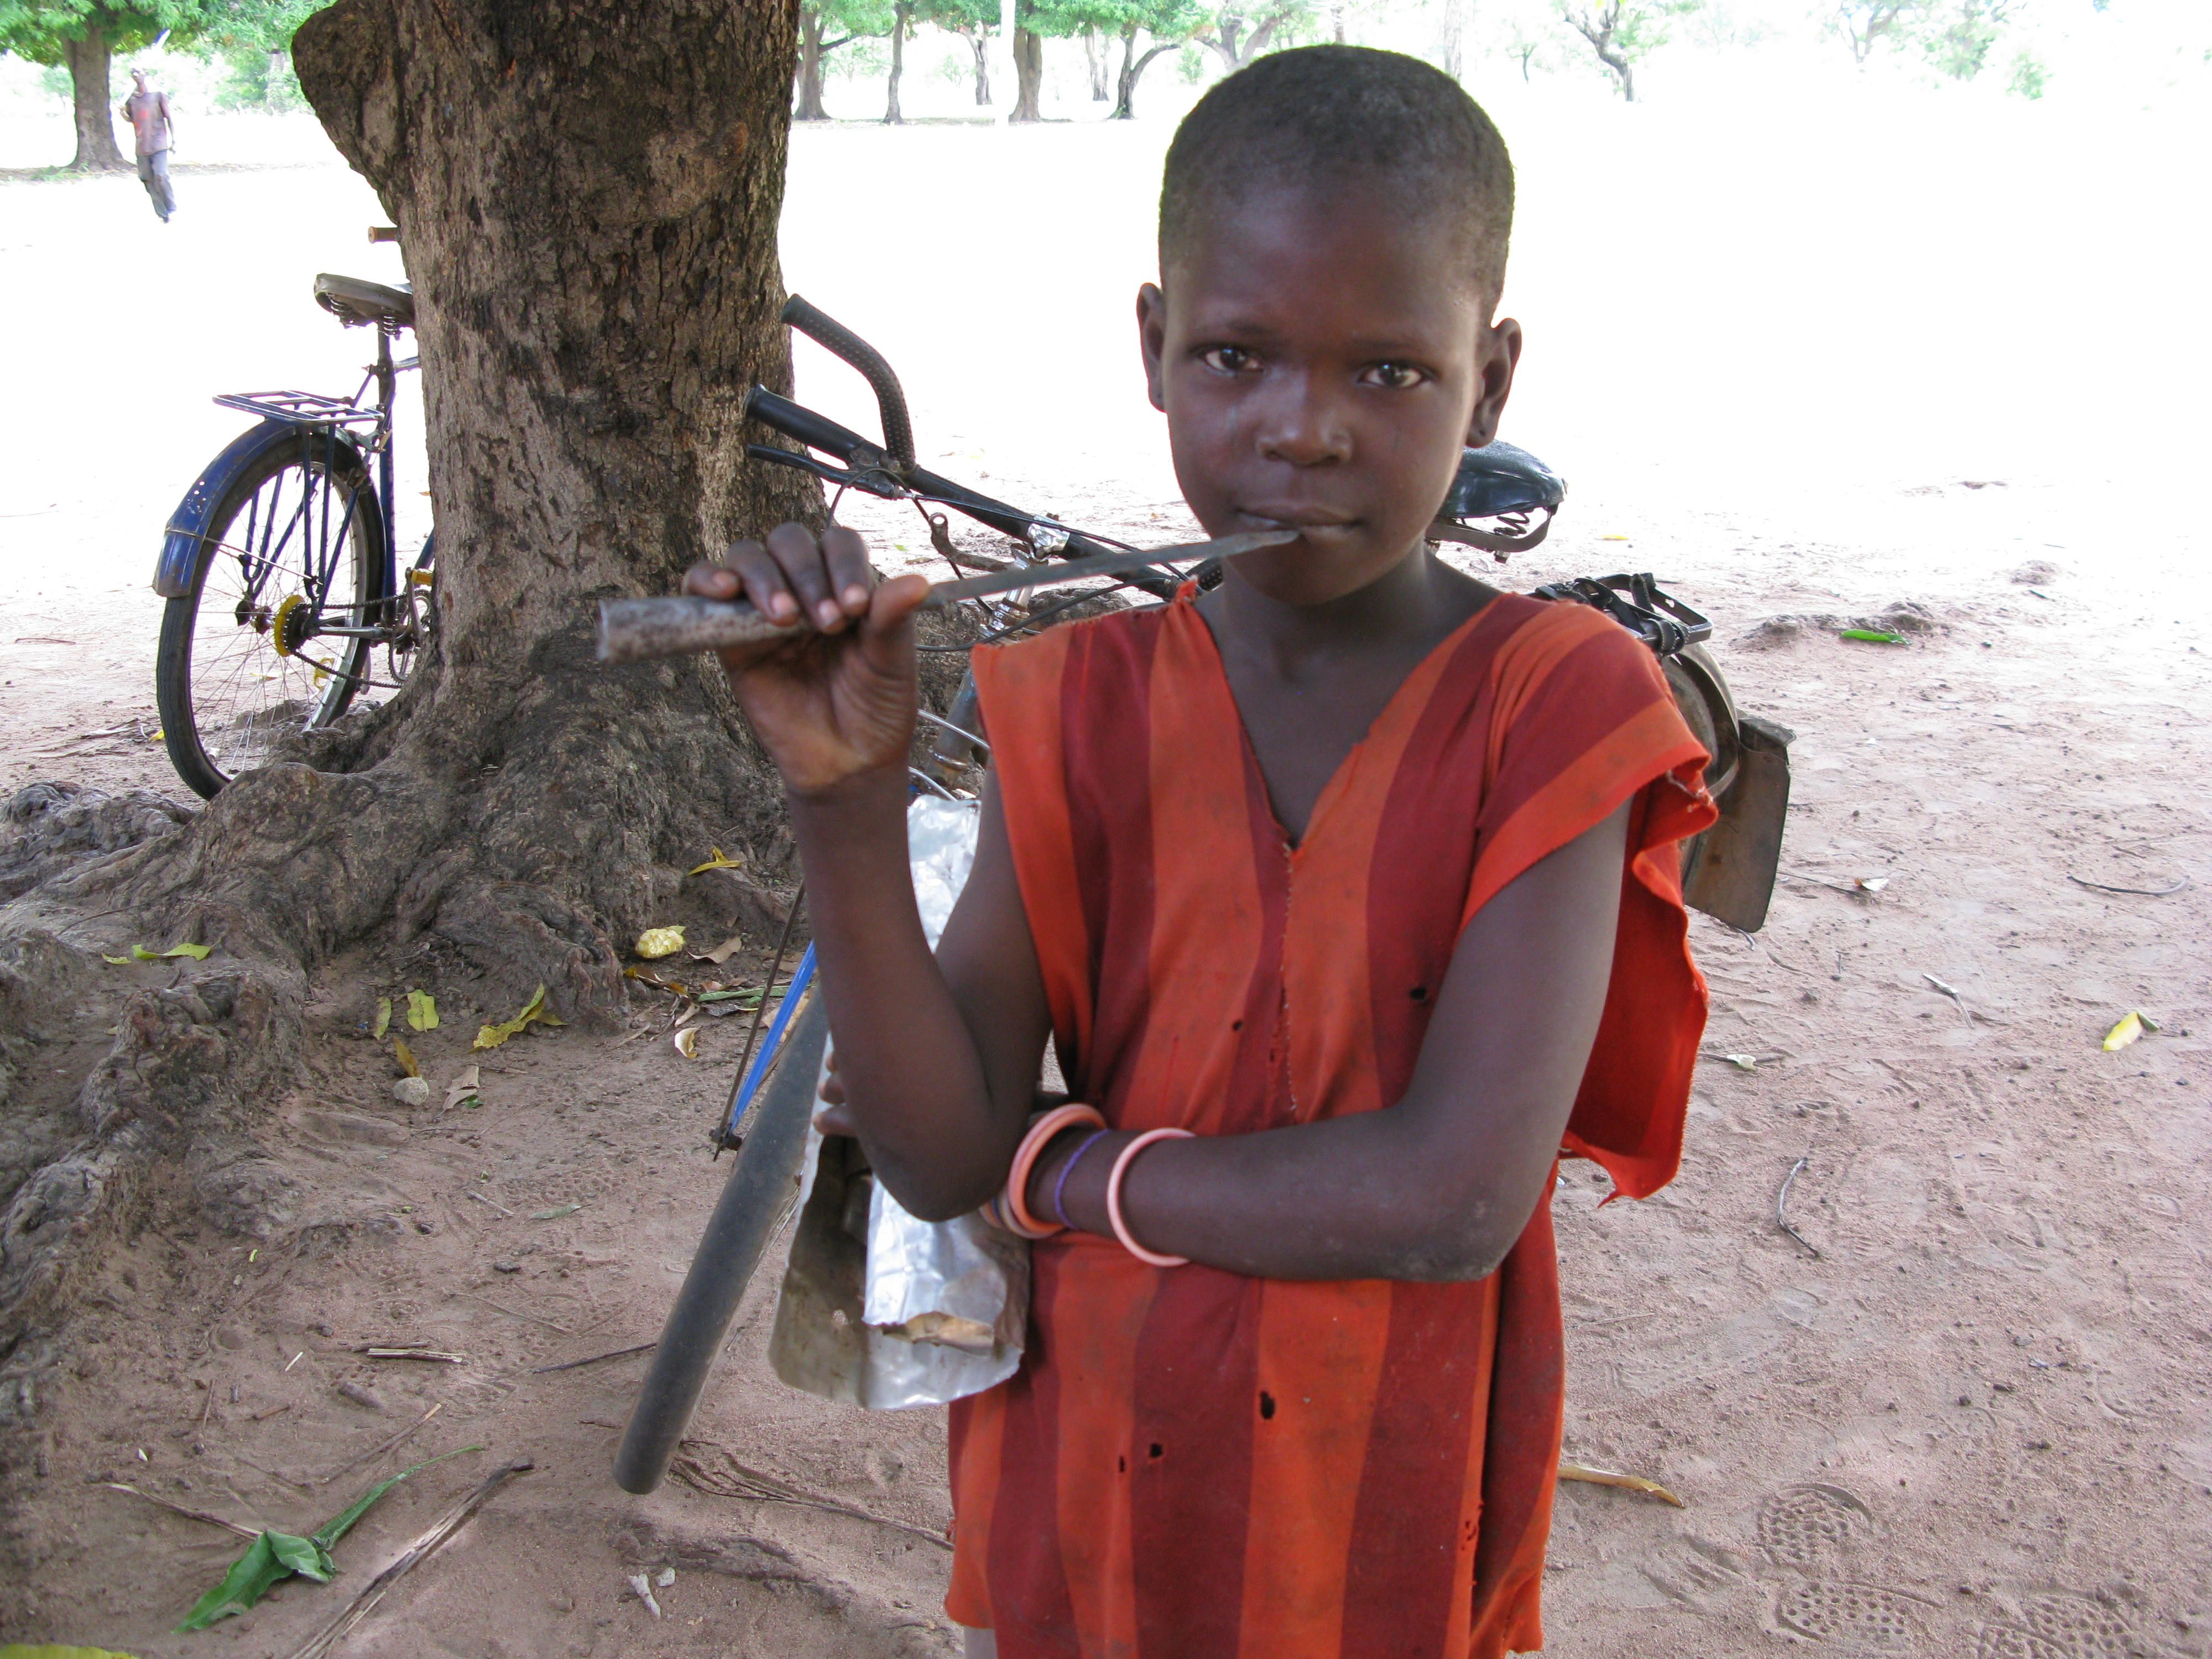 Boy in the Central African Republic